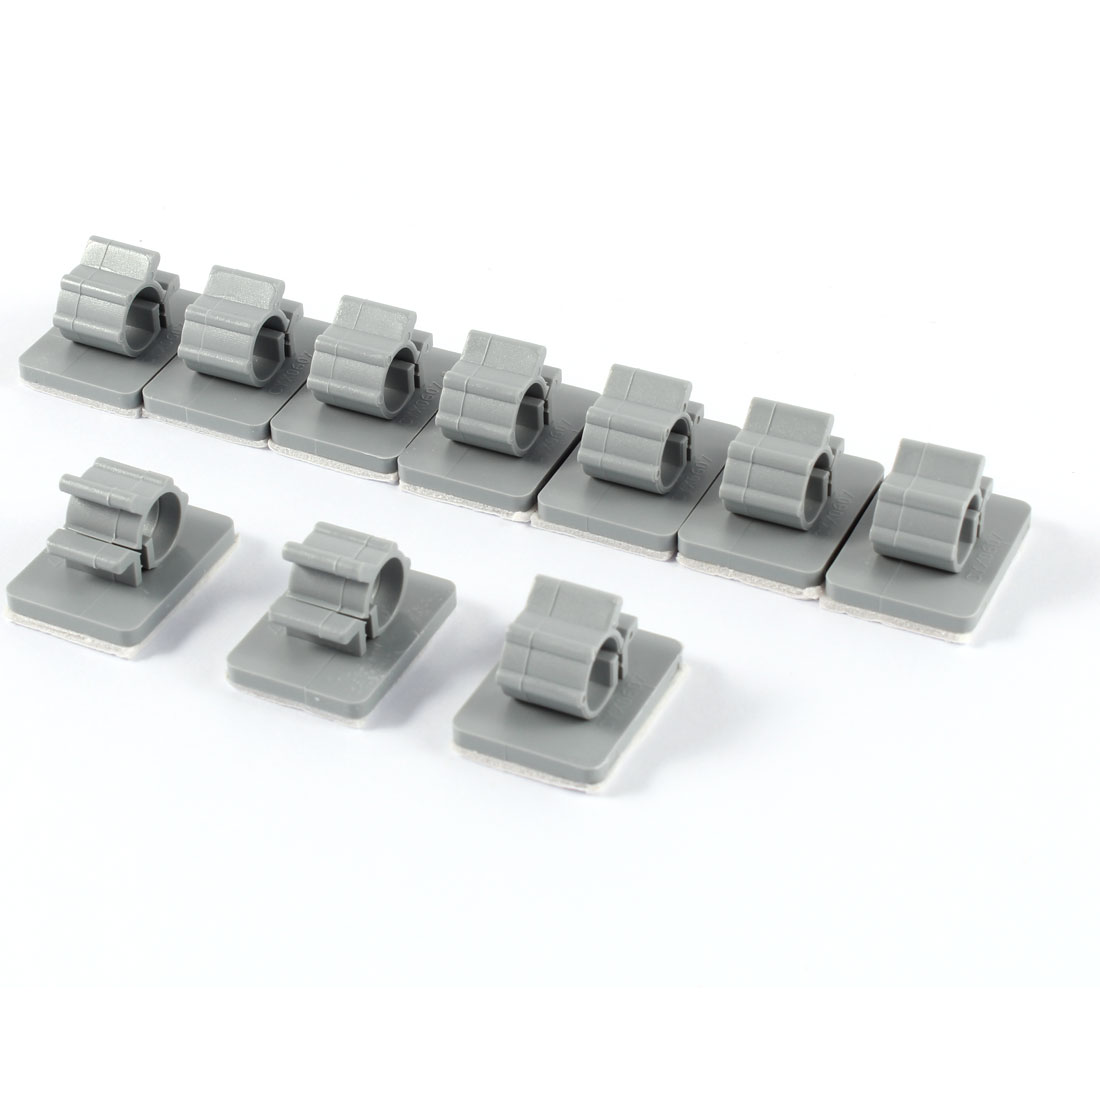 10 Pcs Gray Plastic Self Adhesive Wire Cable Clip Hose Tube Clamps